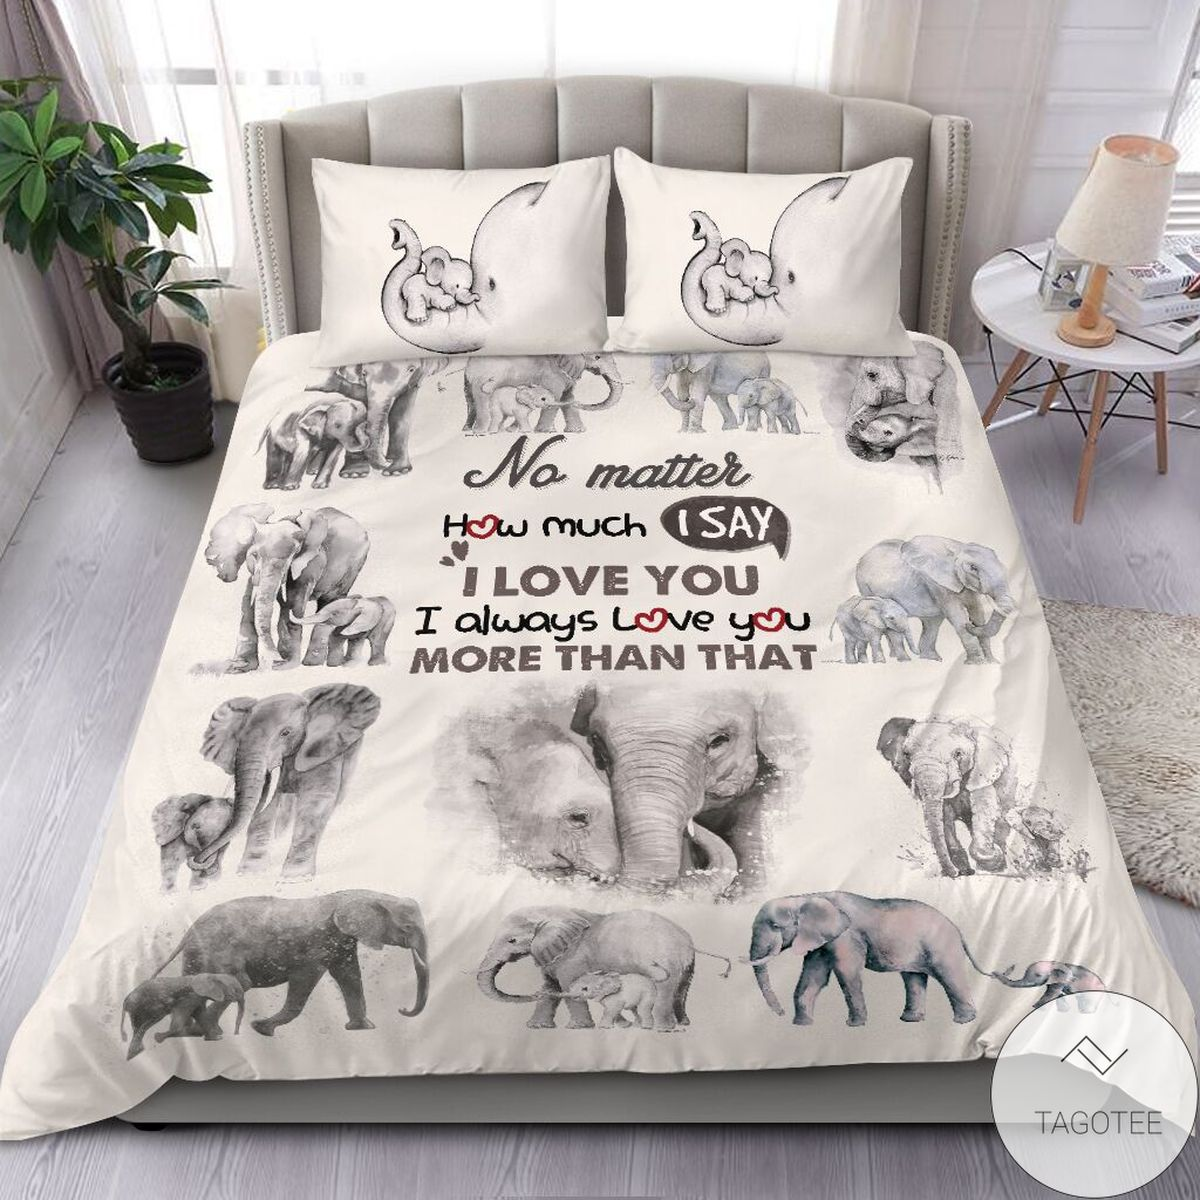 Sale Off Elephant I Always Love You More Than That Bedding Set